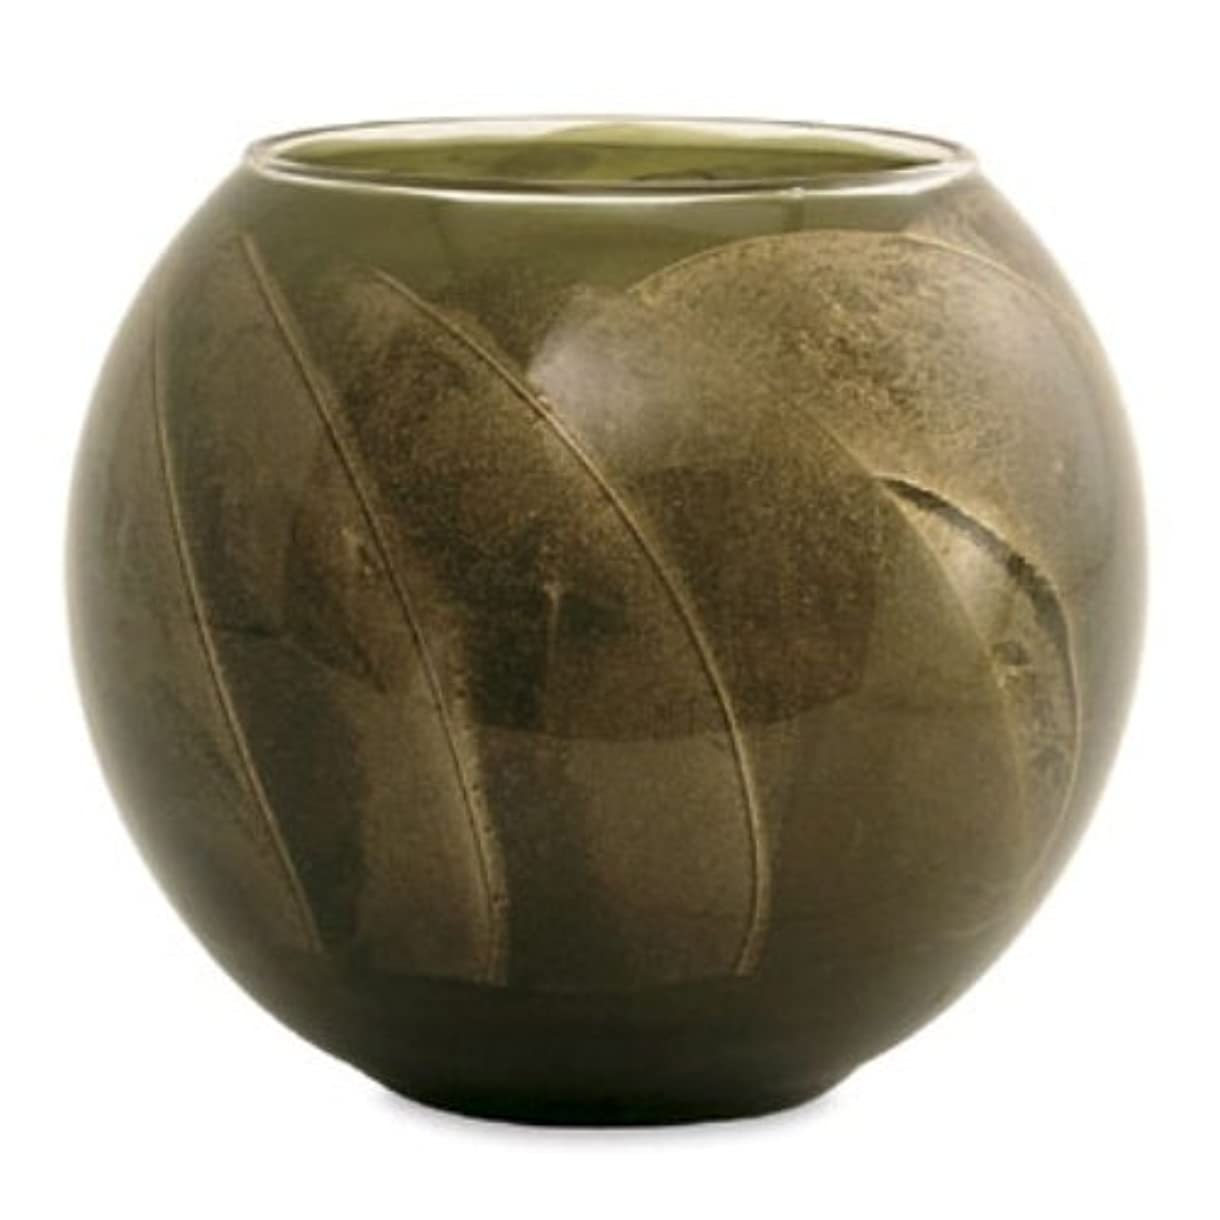 Northern Lights Candles Esque Polished Globe - 4 inch Olive by Northern Lights Candles [並行輸入品]